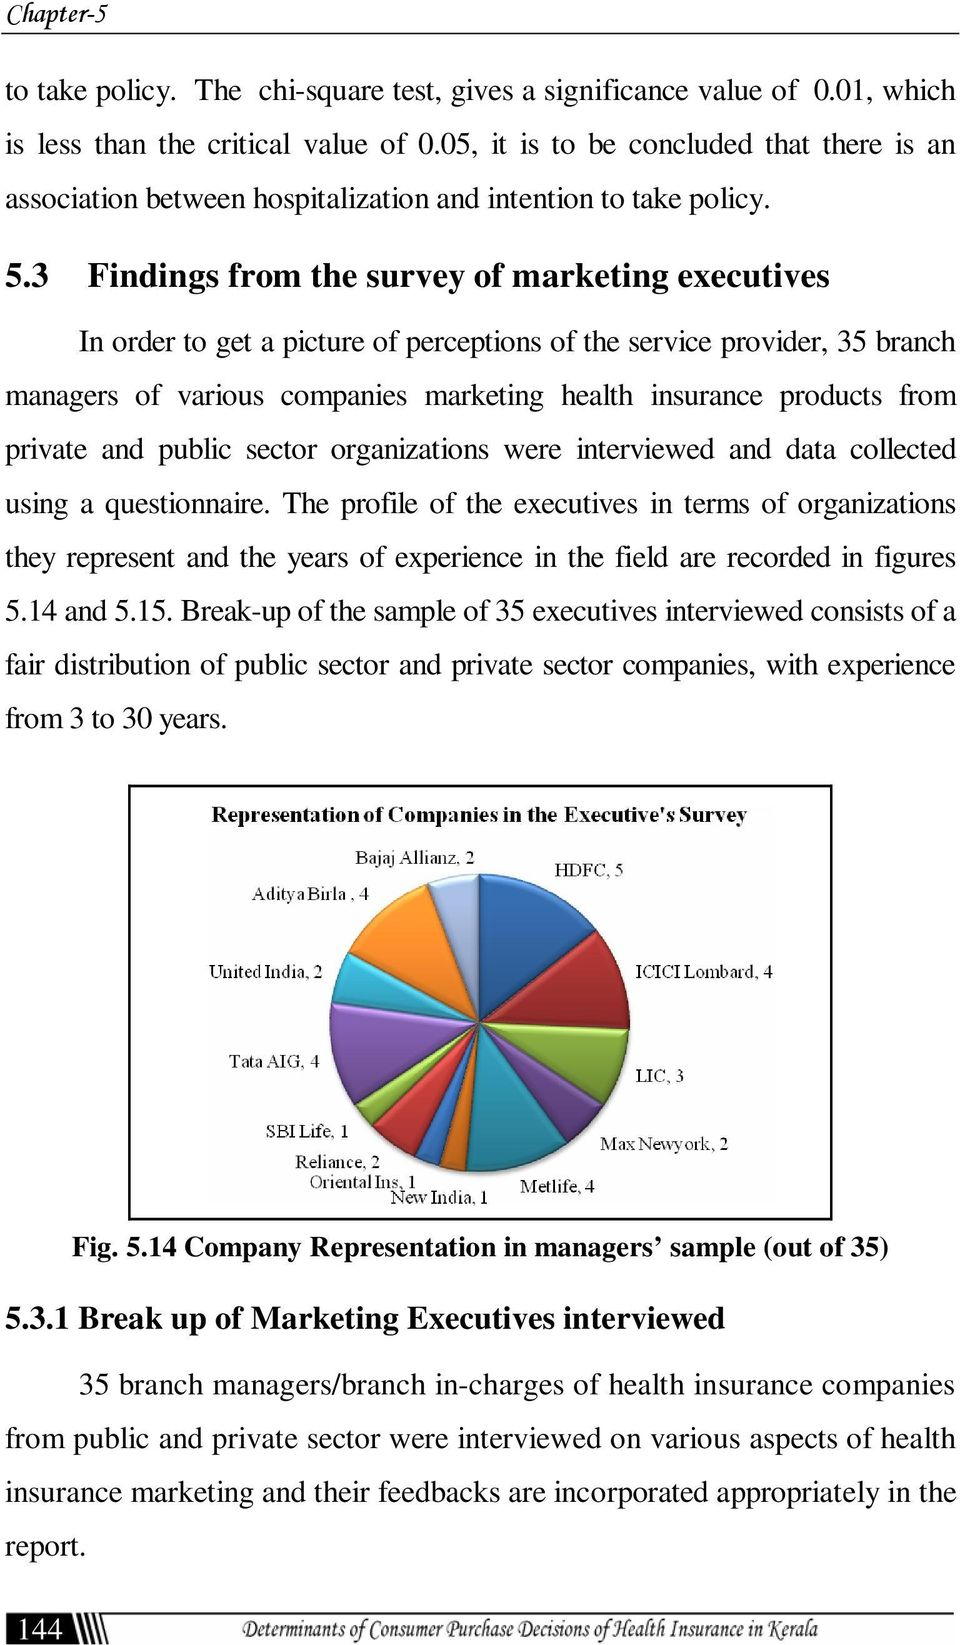 3 Findings from the survey of marketing executives In order to get a picture of perceptions of the service provider, 35 branch managers of various companies marketing health insurance products from